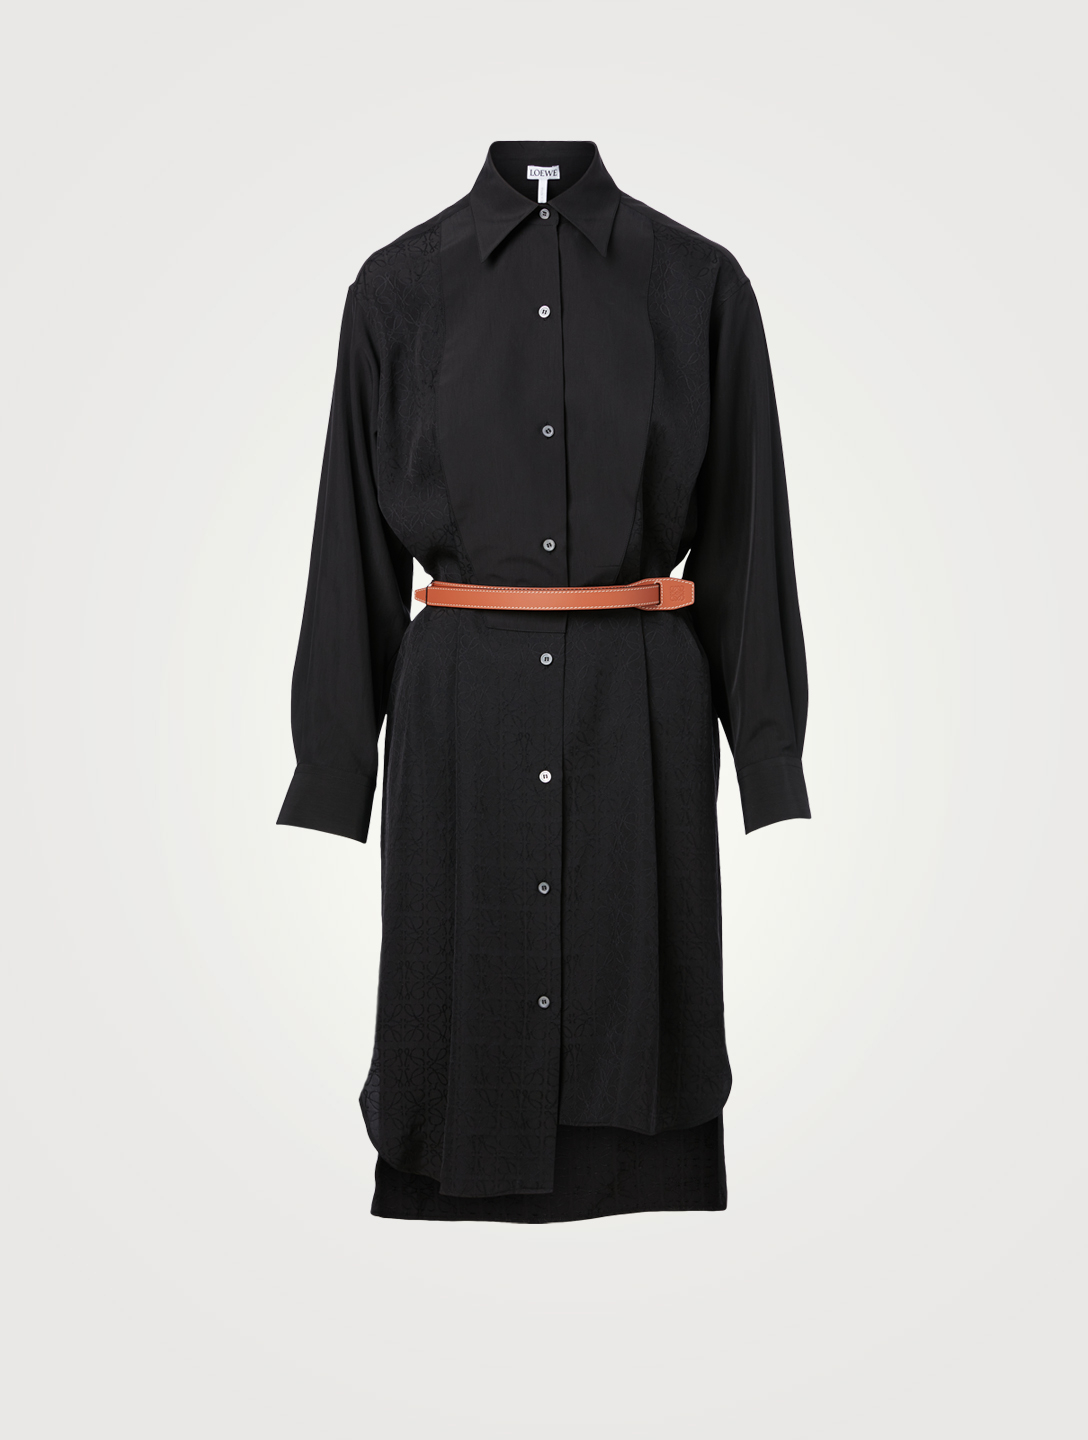 LOEWE Silk Anagram Shirt Dress With Leather Belt Women's Black